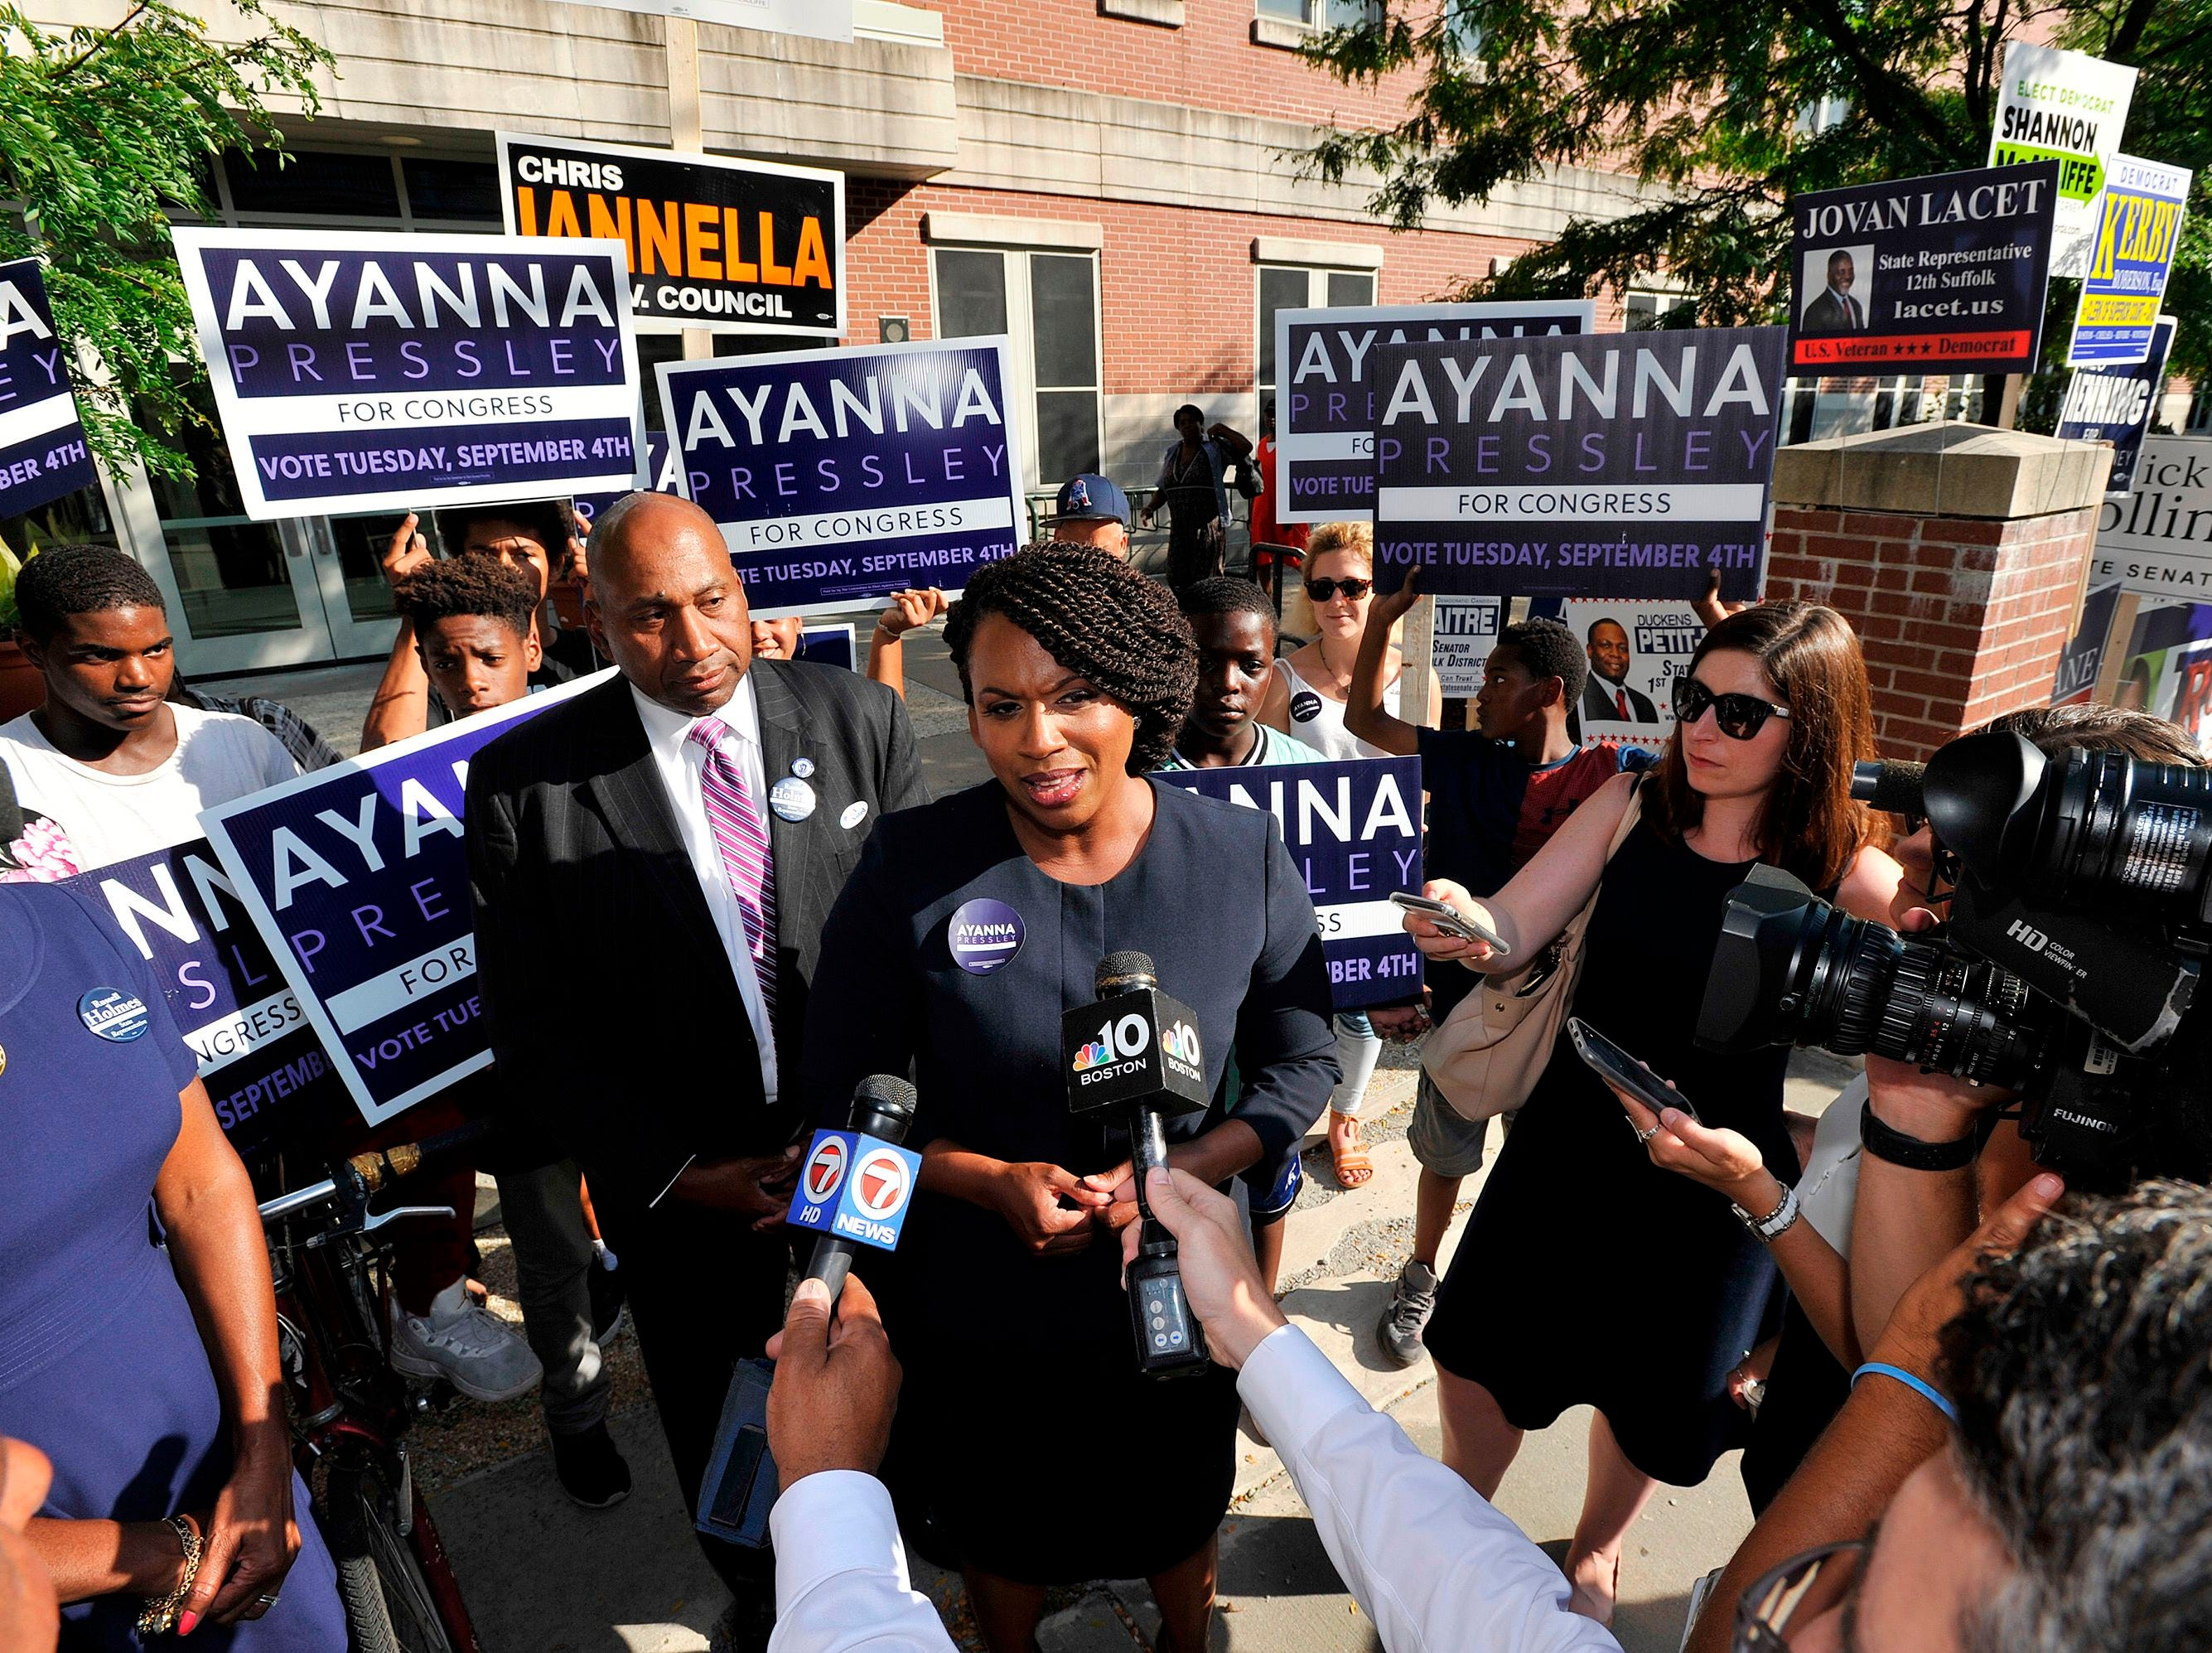 Ayanna Pressley, Democratic candidate for Congress,  addresses the press and takes questions at the Mildred Middle School and Community Center in Boston, that served as a polling station for primary election on September 4, 2018.